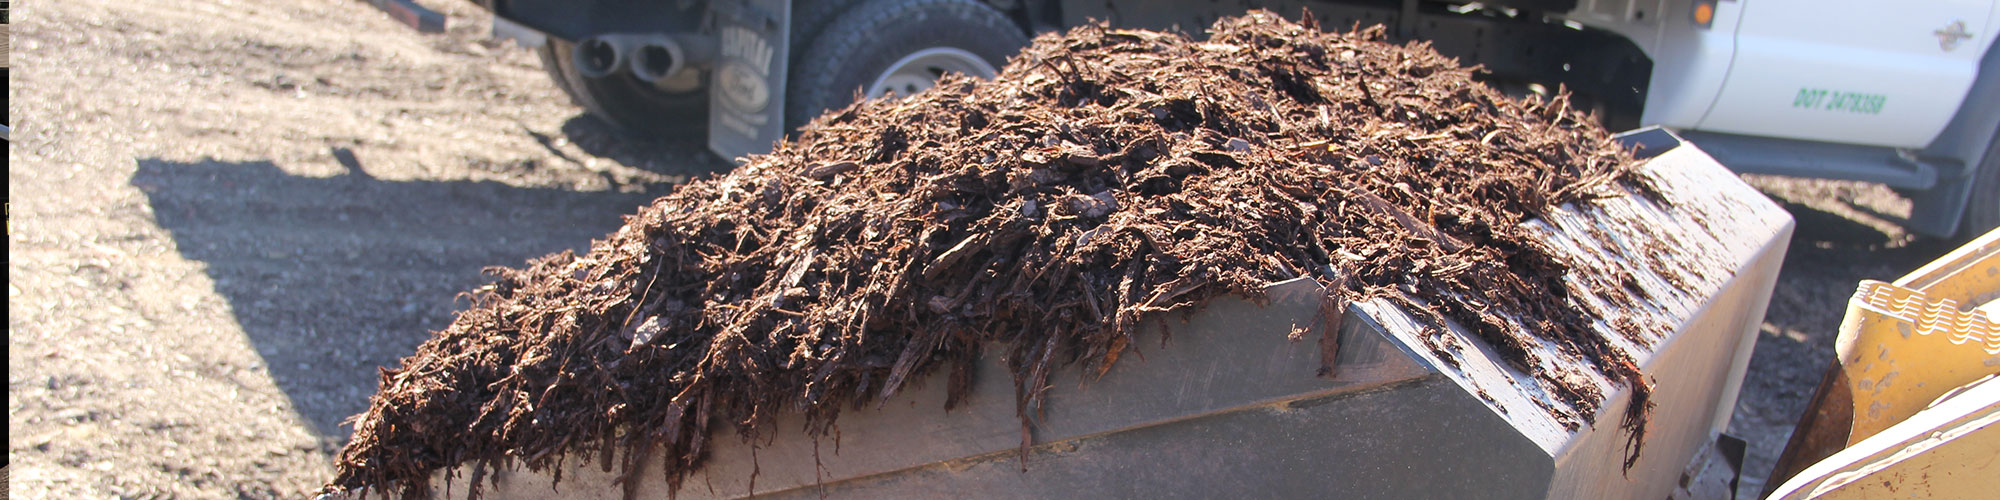 Mulch 4 Sale